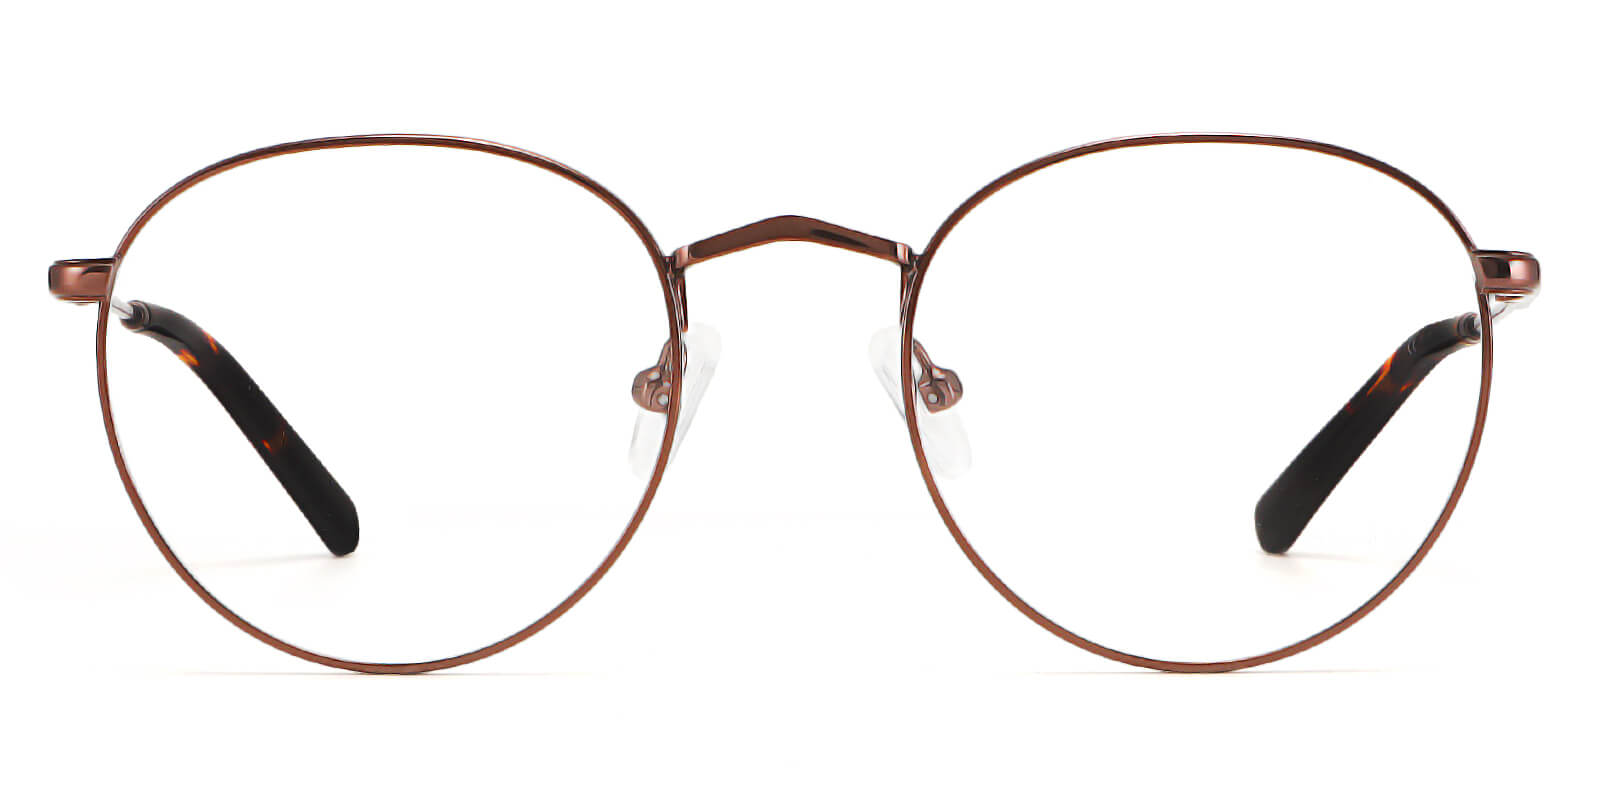 Leslie-Round glasses with full rim metal frame all-day comfort